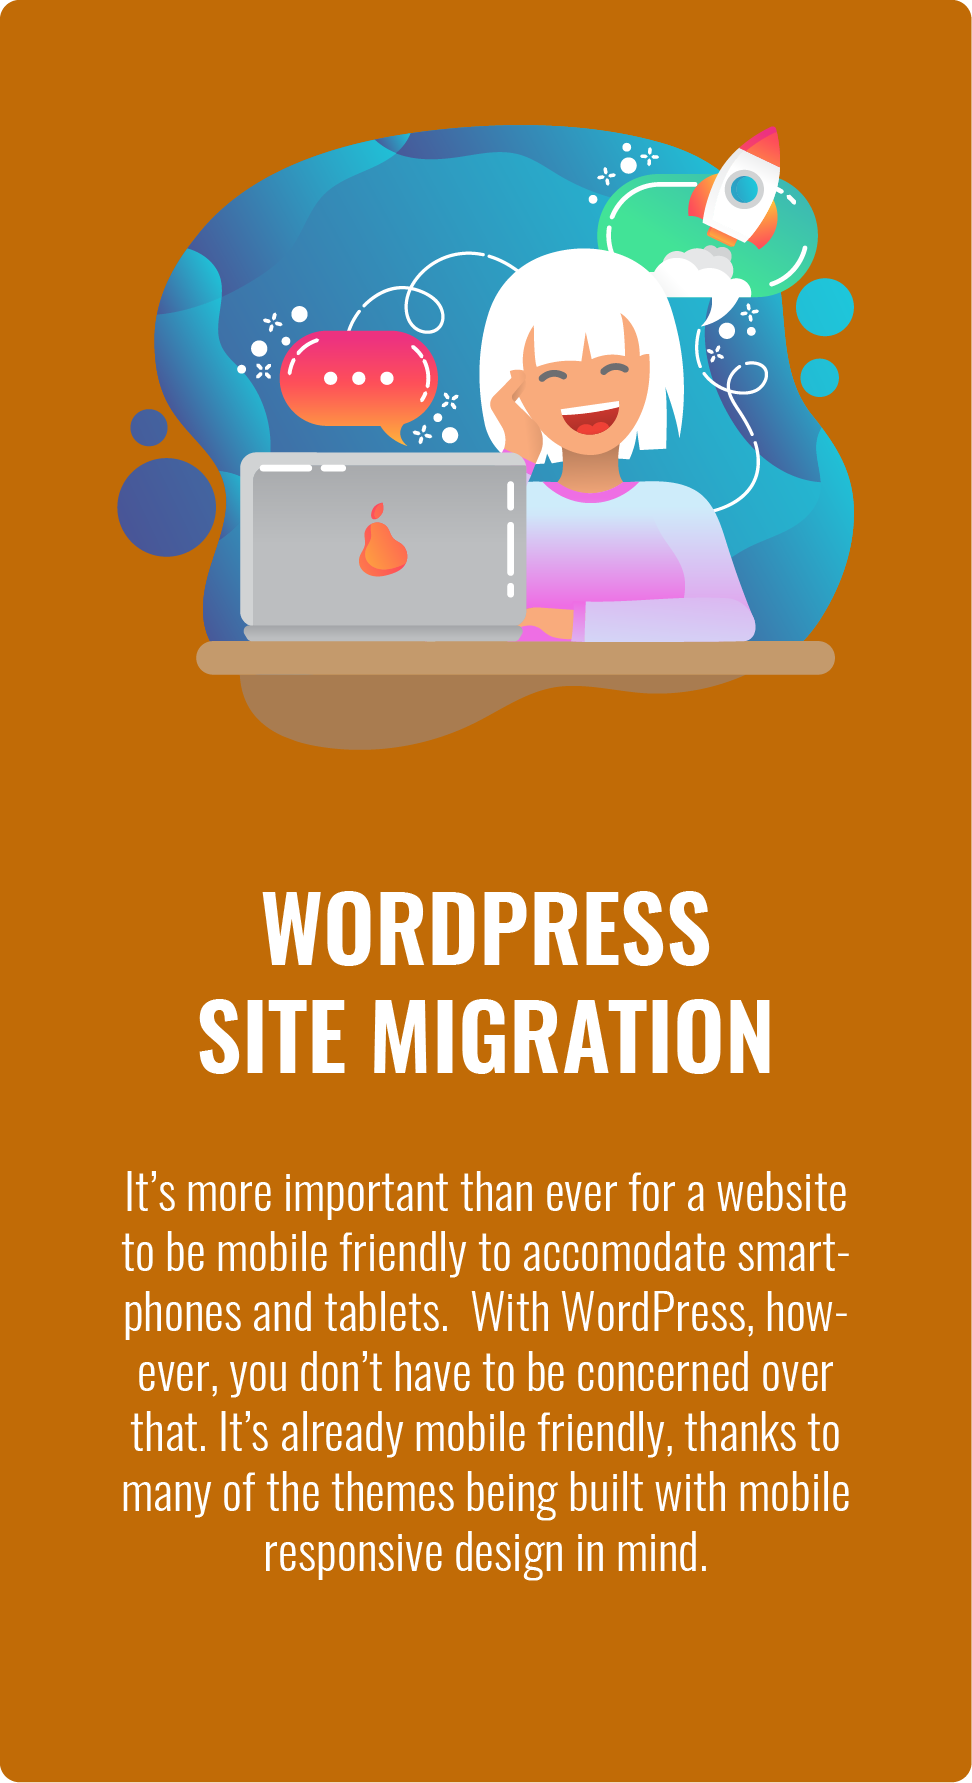 WordPress Web Site Migration Services